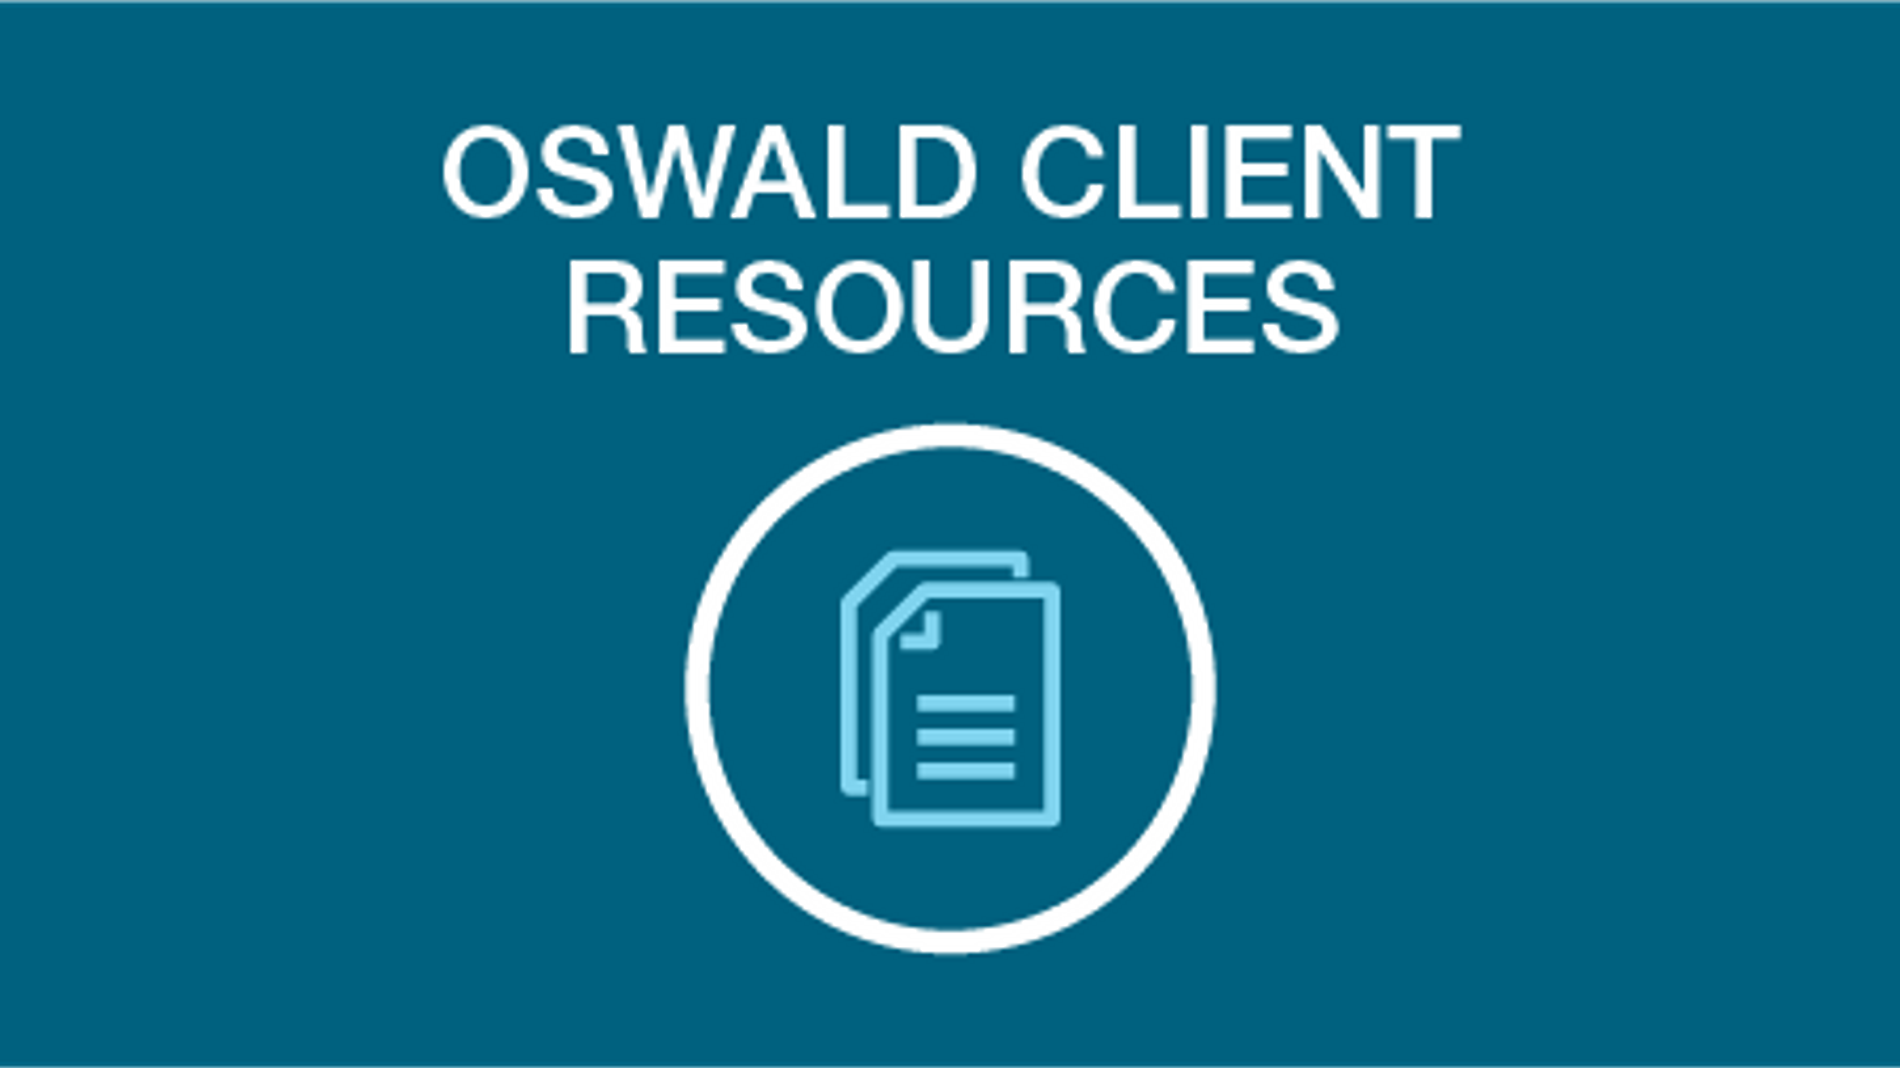 Client Resources icon